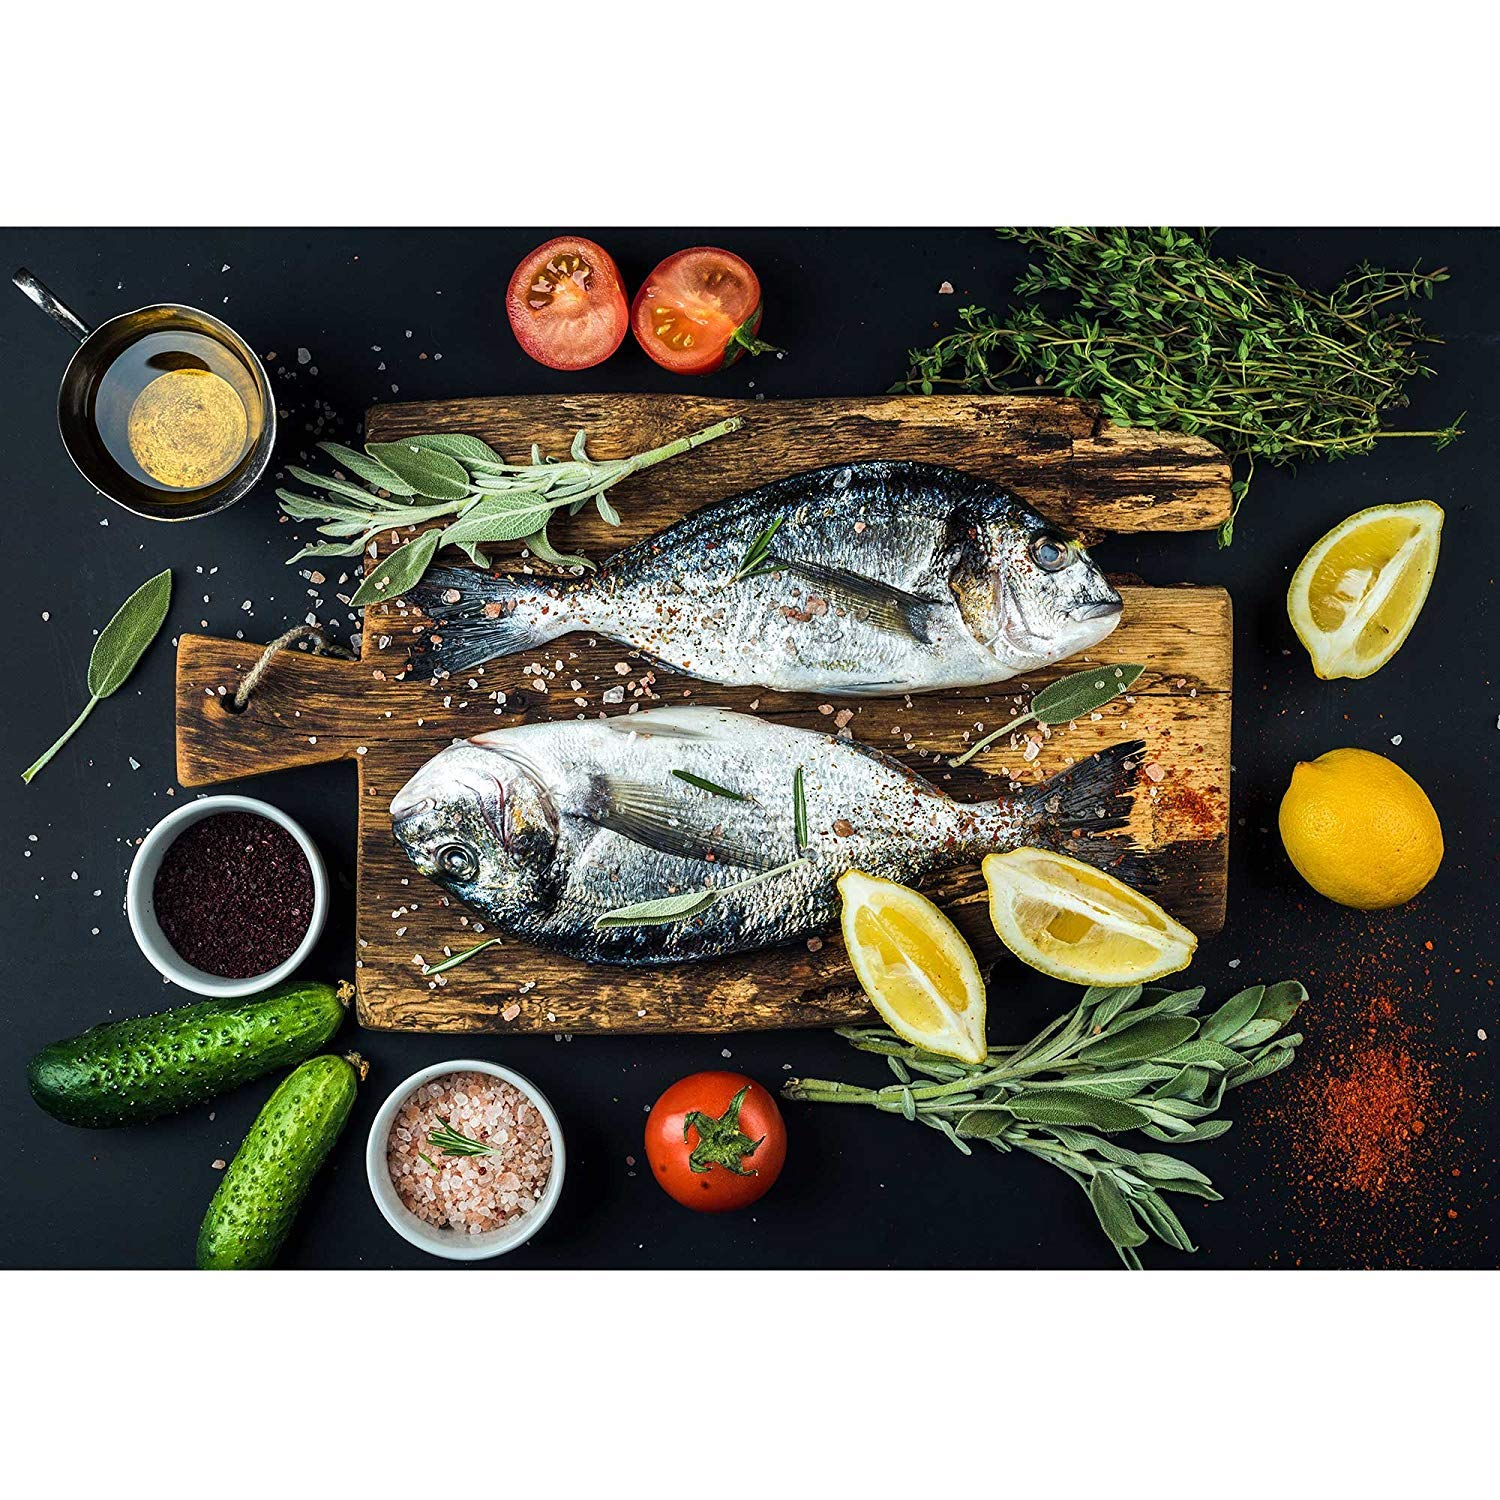 LanimioLOX Fresh Uncooked Dorado or Sea Bream Fish with Lemon, Herbs, Oil, Vegetables and Spices - Removable Wall Mural | Self-Adhesive Large Wallpaper